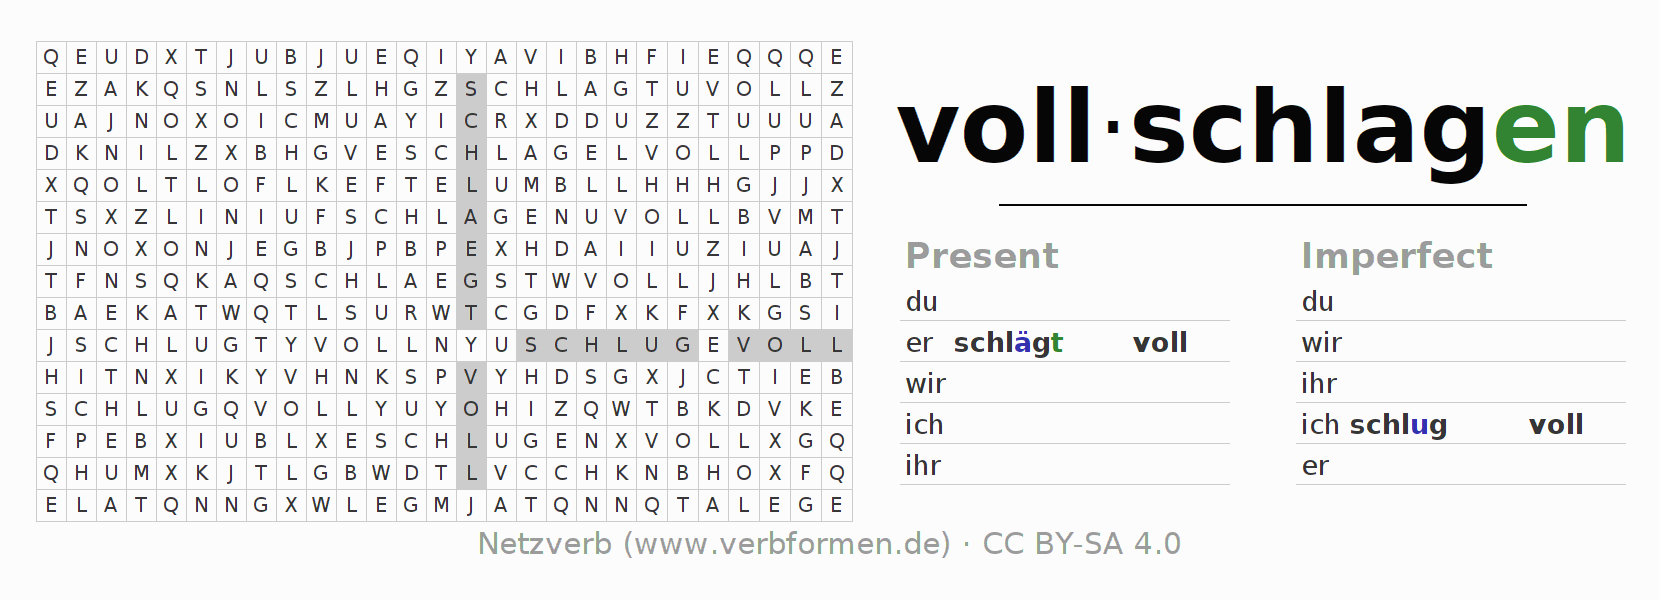 Worksheets Verb Vollschlagen Exercises For Conjugation Of German